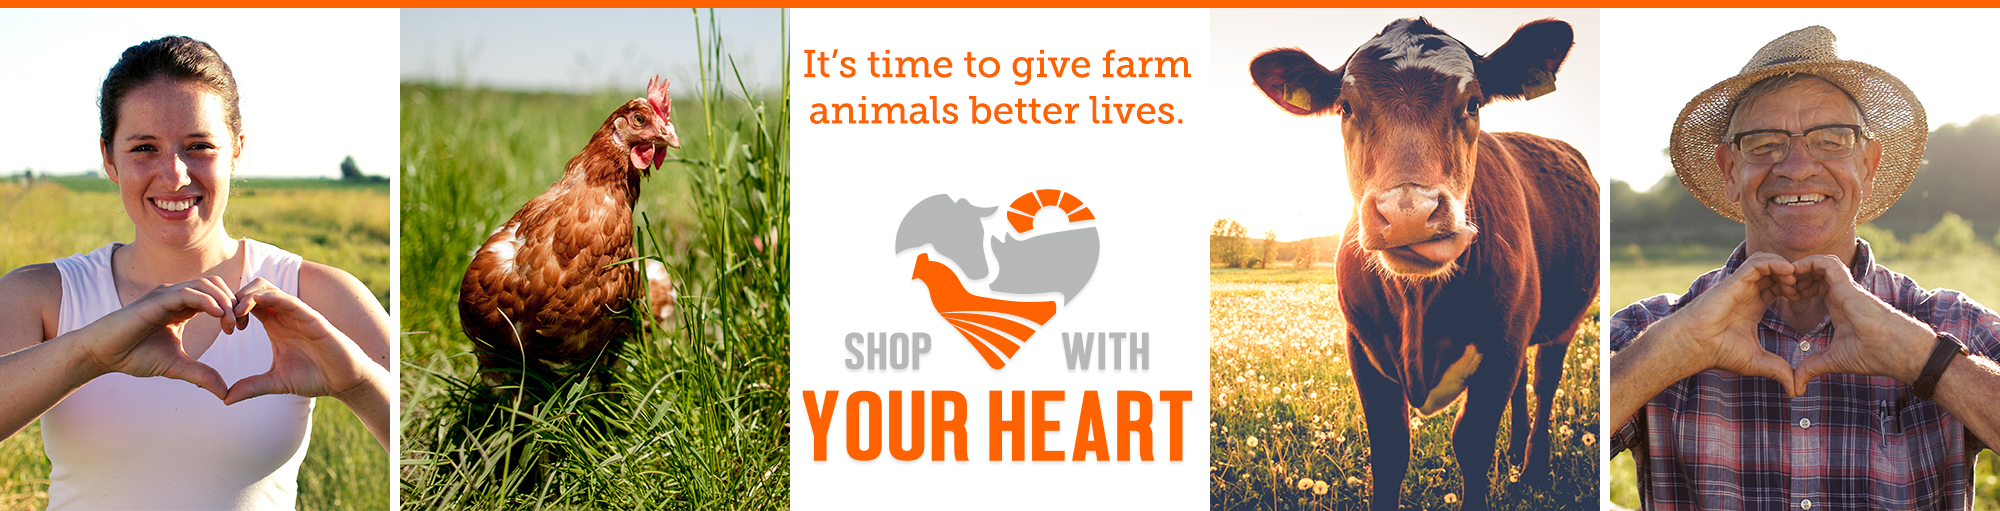 "Join the ""Shop With Your Heart"" initiative from the ASPCA"